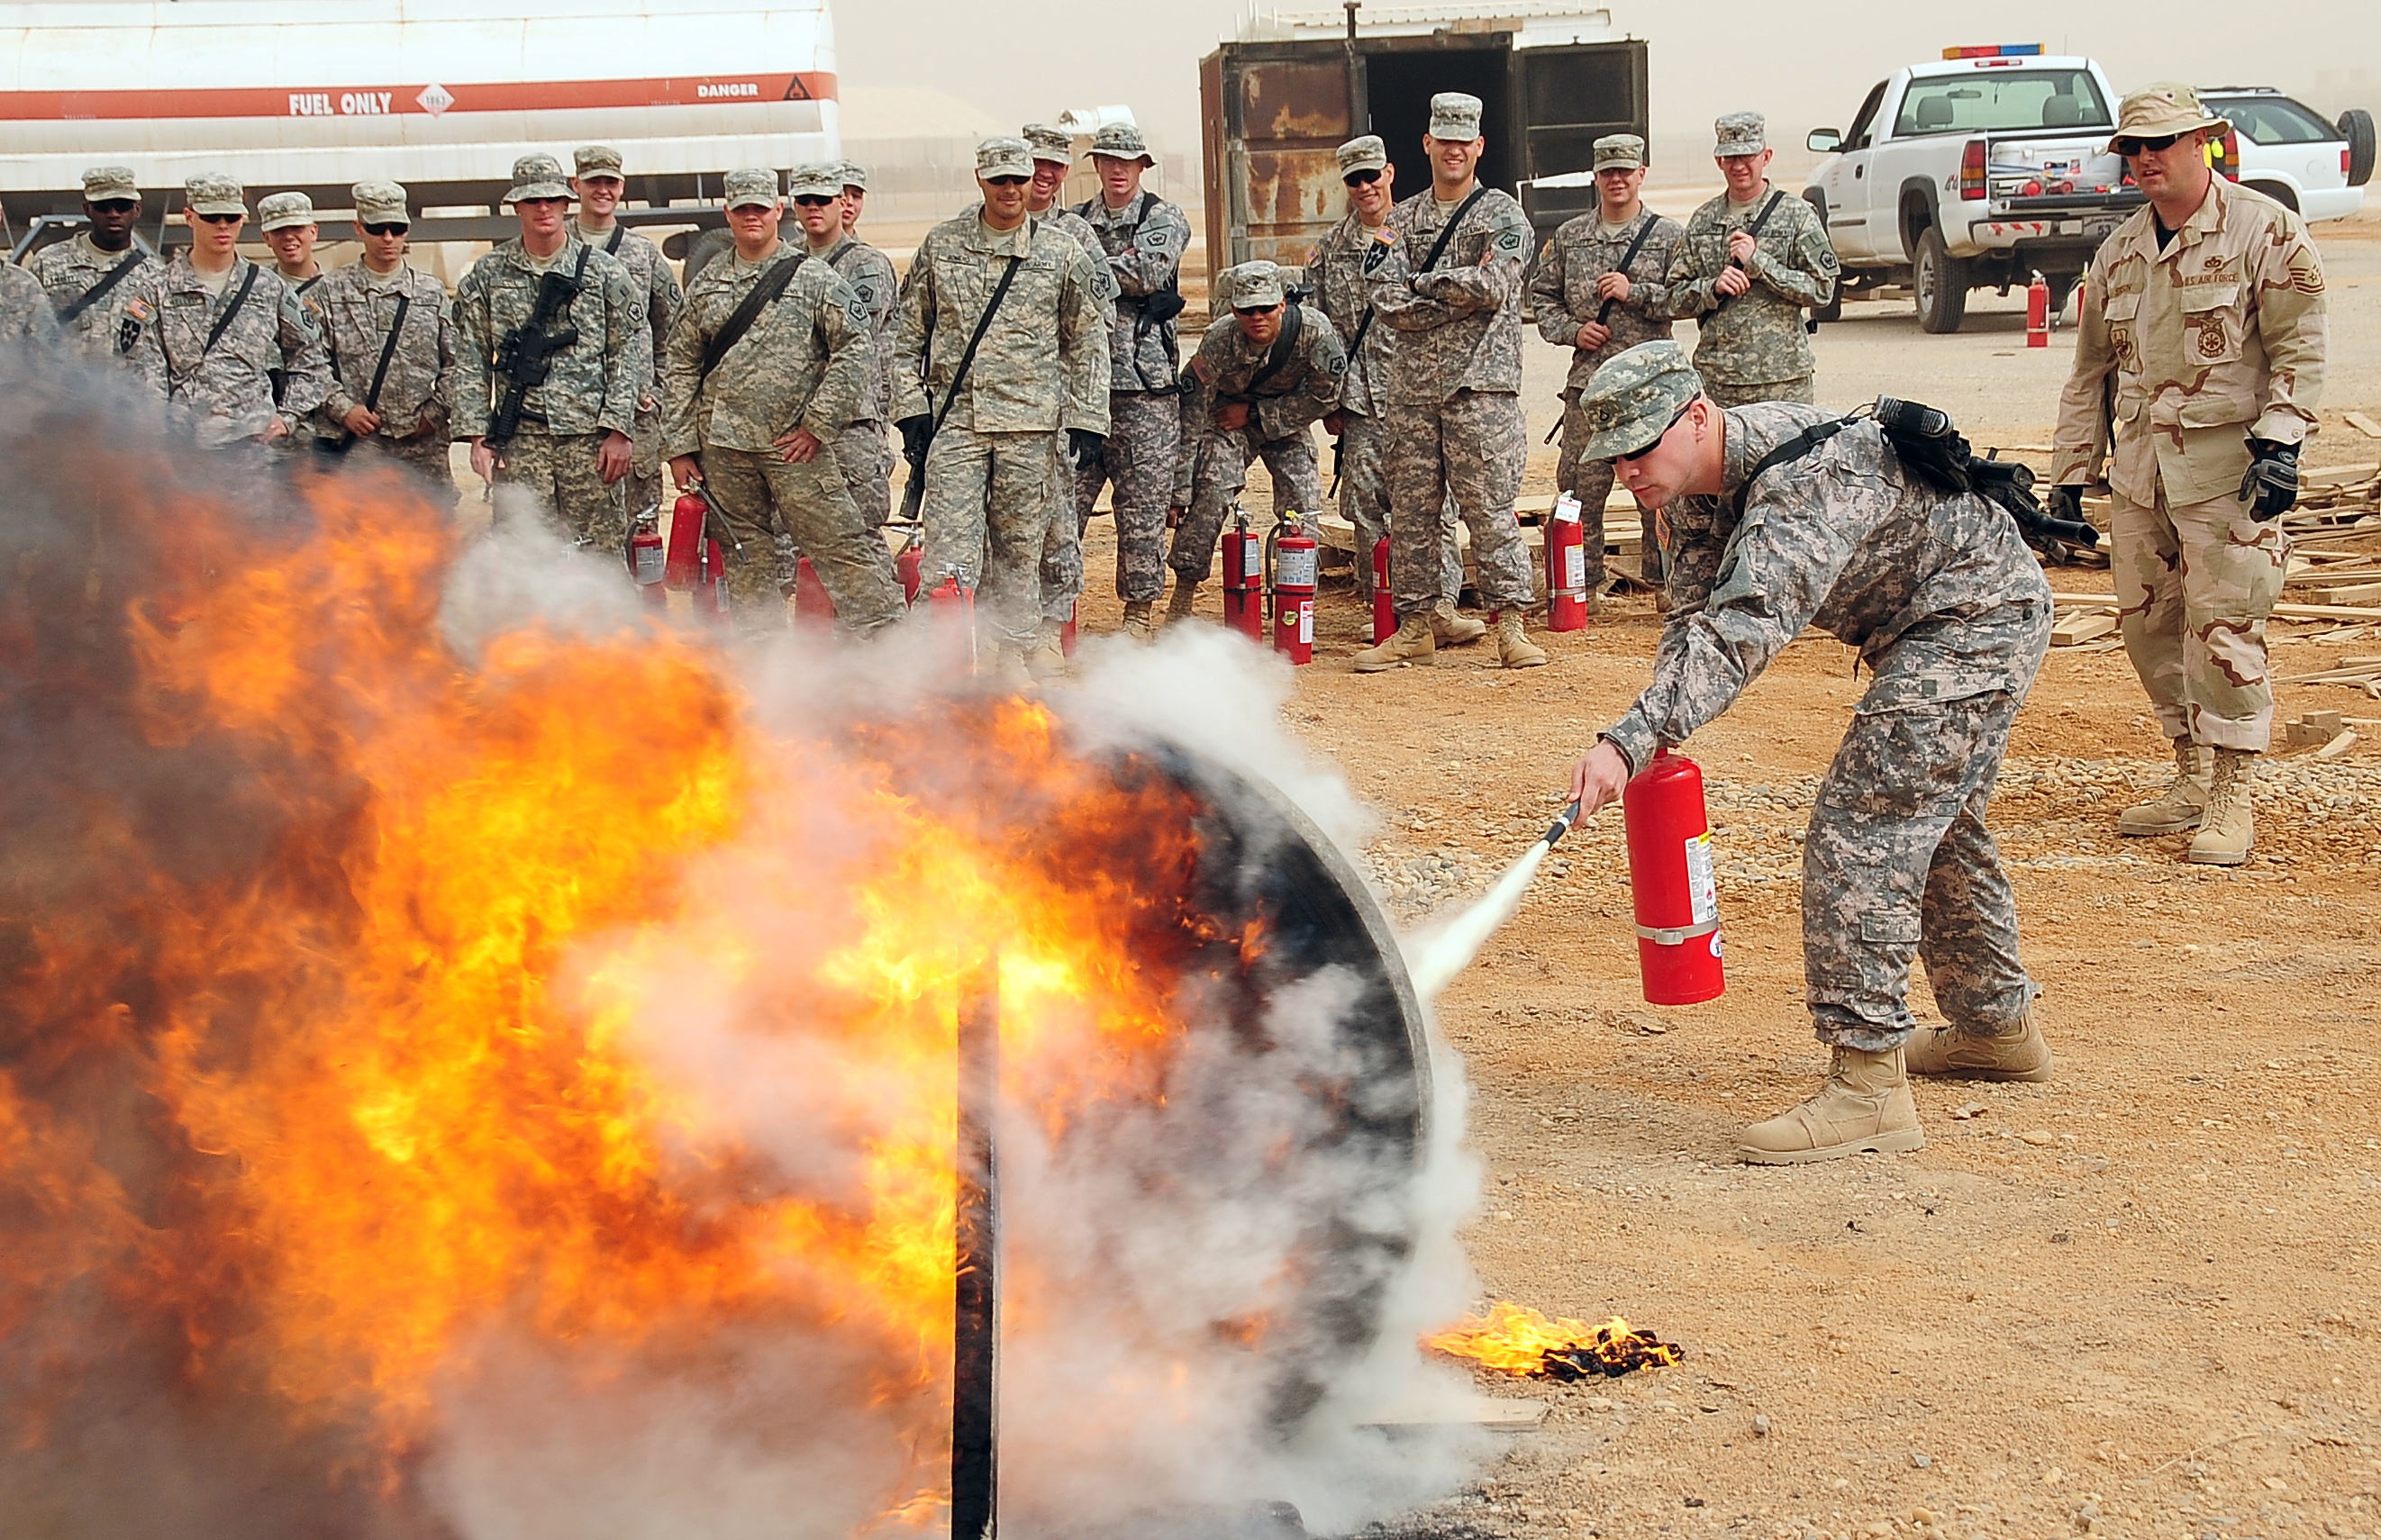 File:Flickr - The U.S. Army - Fire training.jpg - Wikimedia Commons